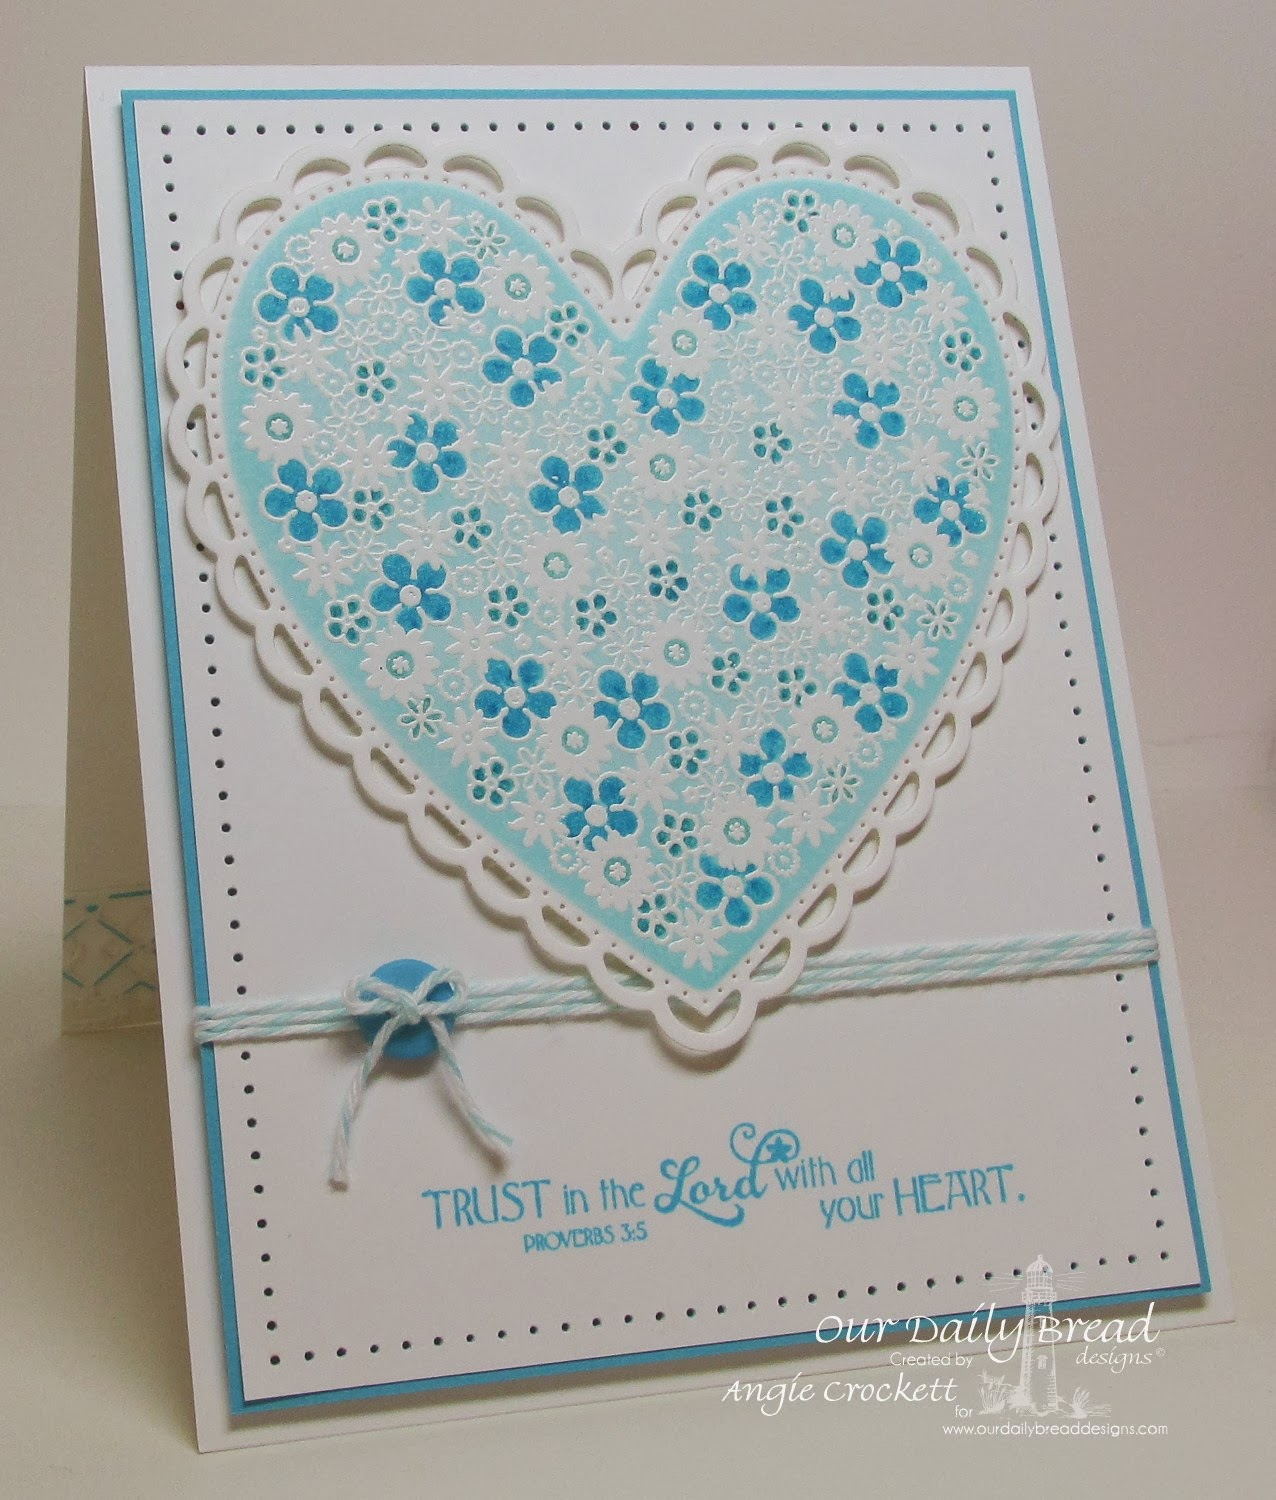 ODBD Flower Heart, Clean Heart, ODBD Custom Ornate Hearts Cutting Dies, Card Designer Angie Crockett